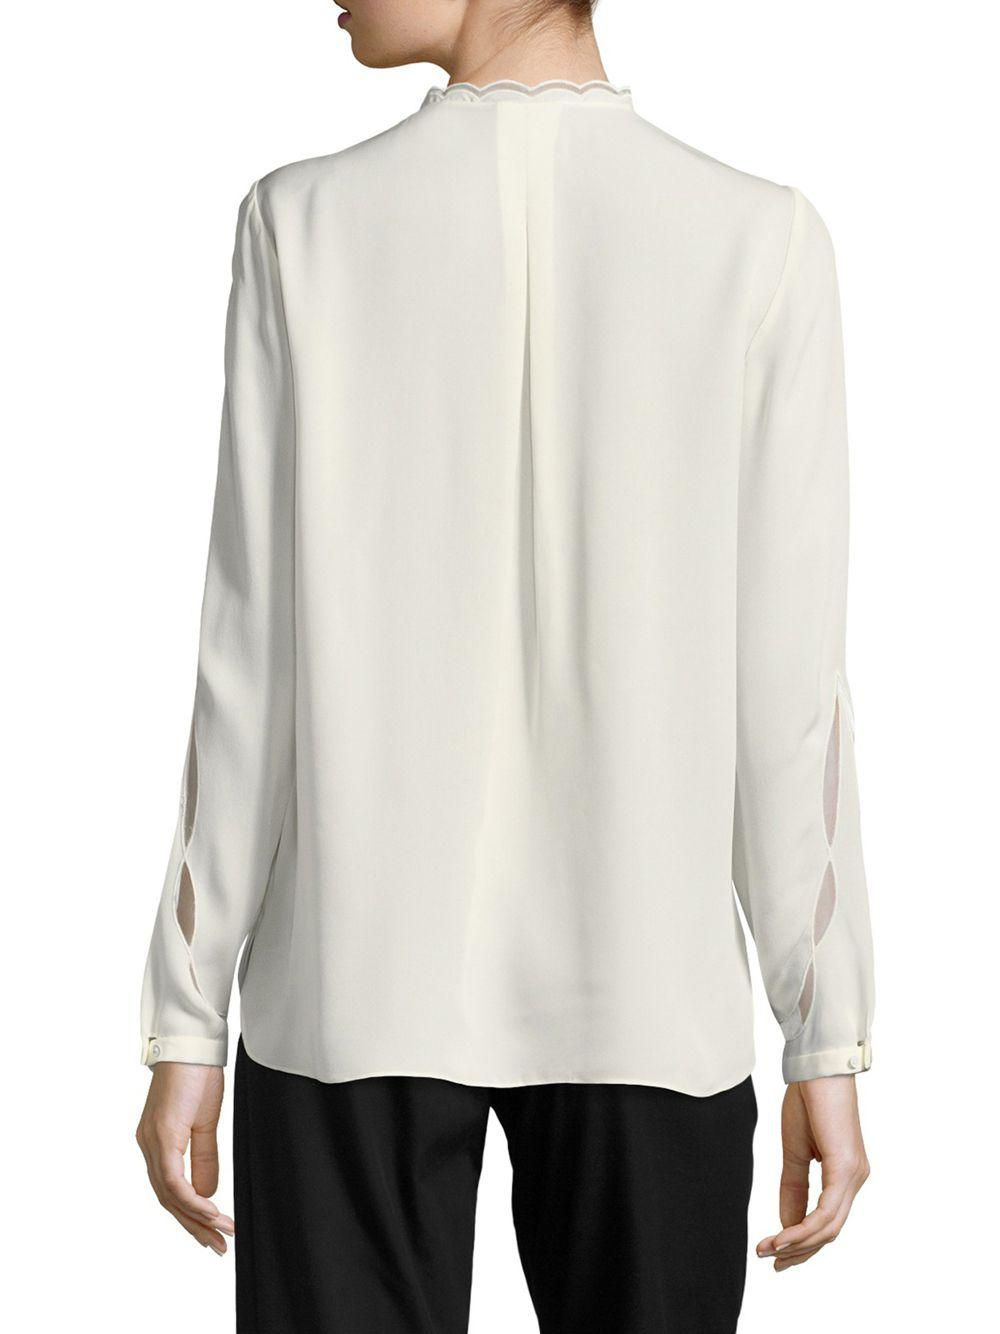 949d14a29c9f8 Elie Tahari - White Justina Long-sleeve Silk-blend Blouse - Lyst. View  fullscreen